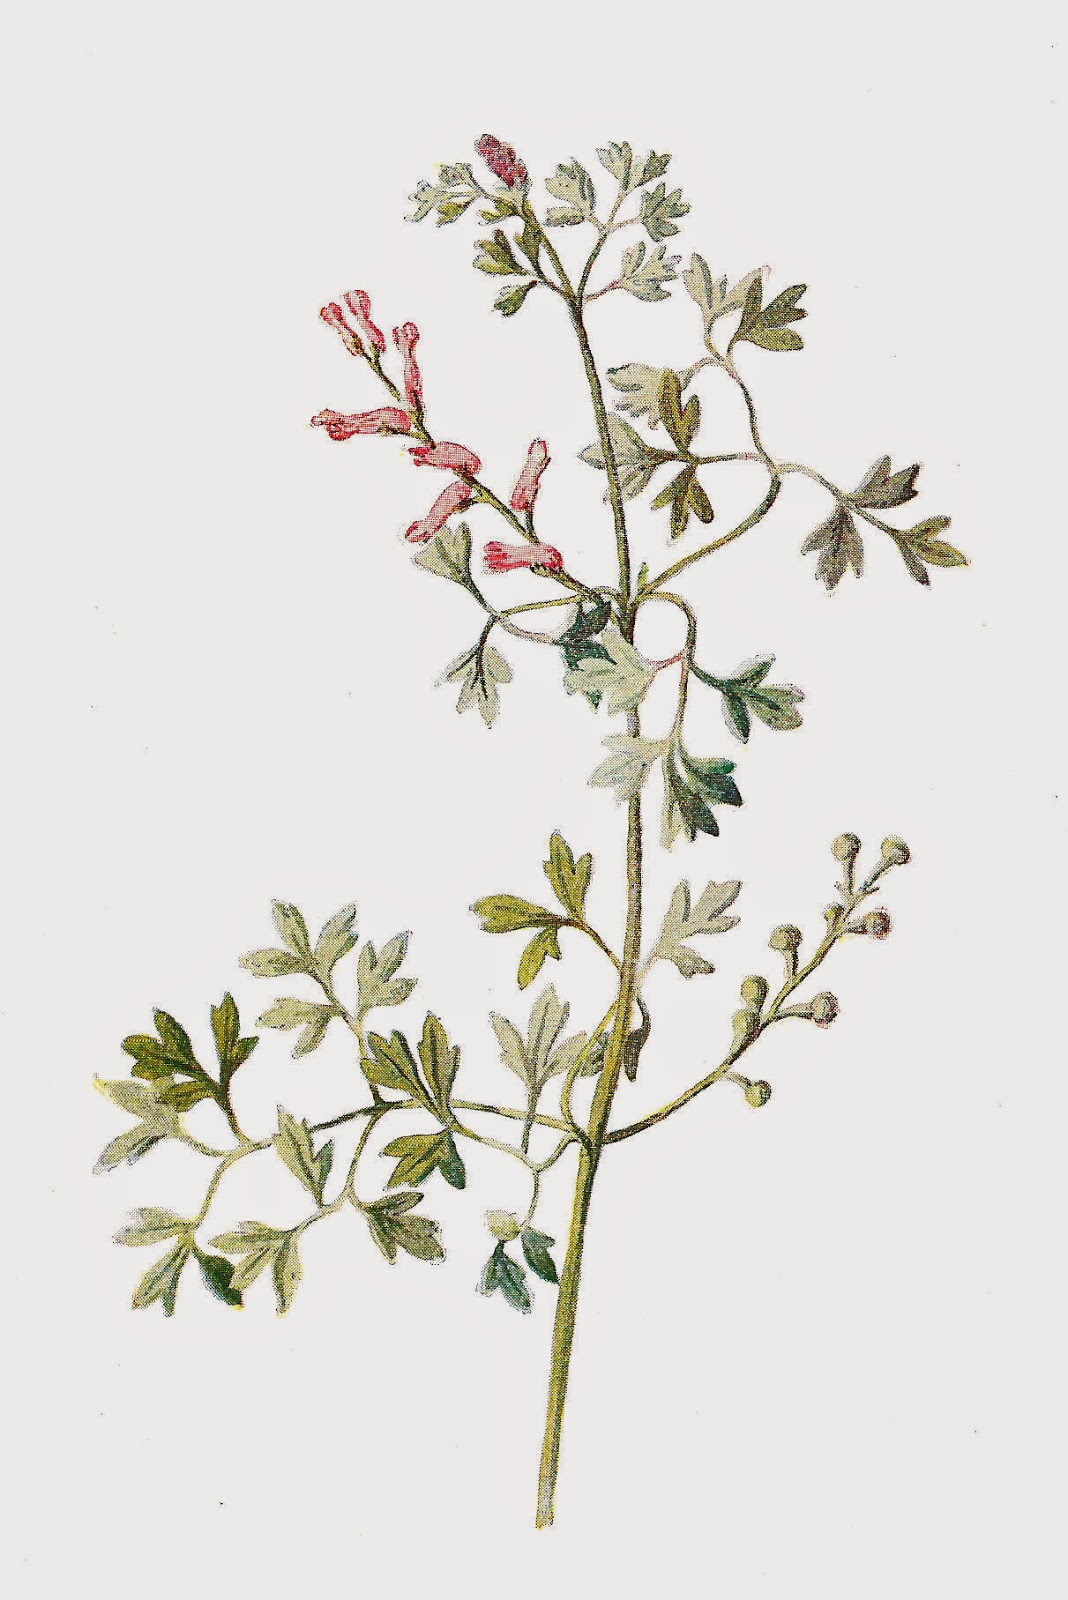 Free Digital Flower Graphic Wildflower Clip Art Of Fumitory